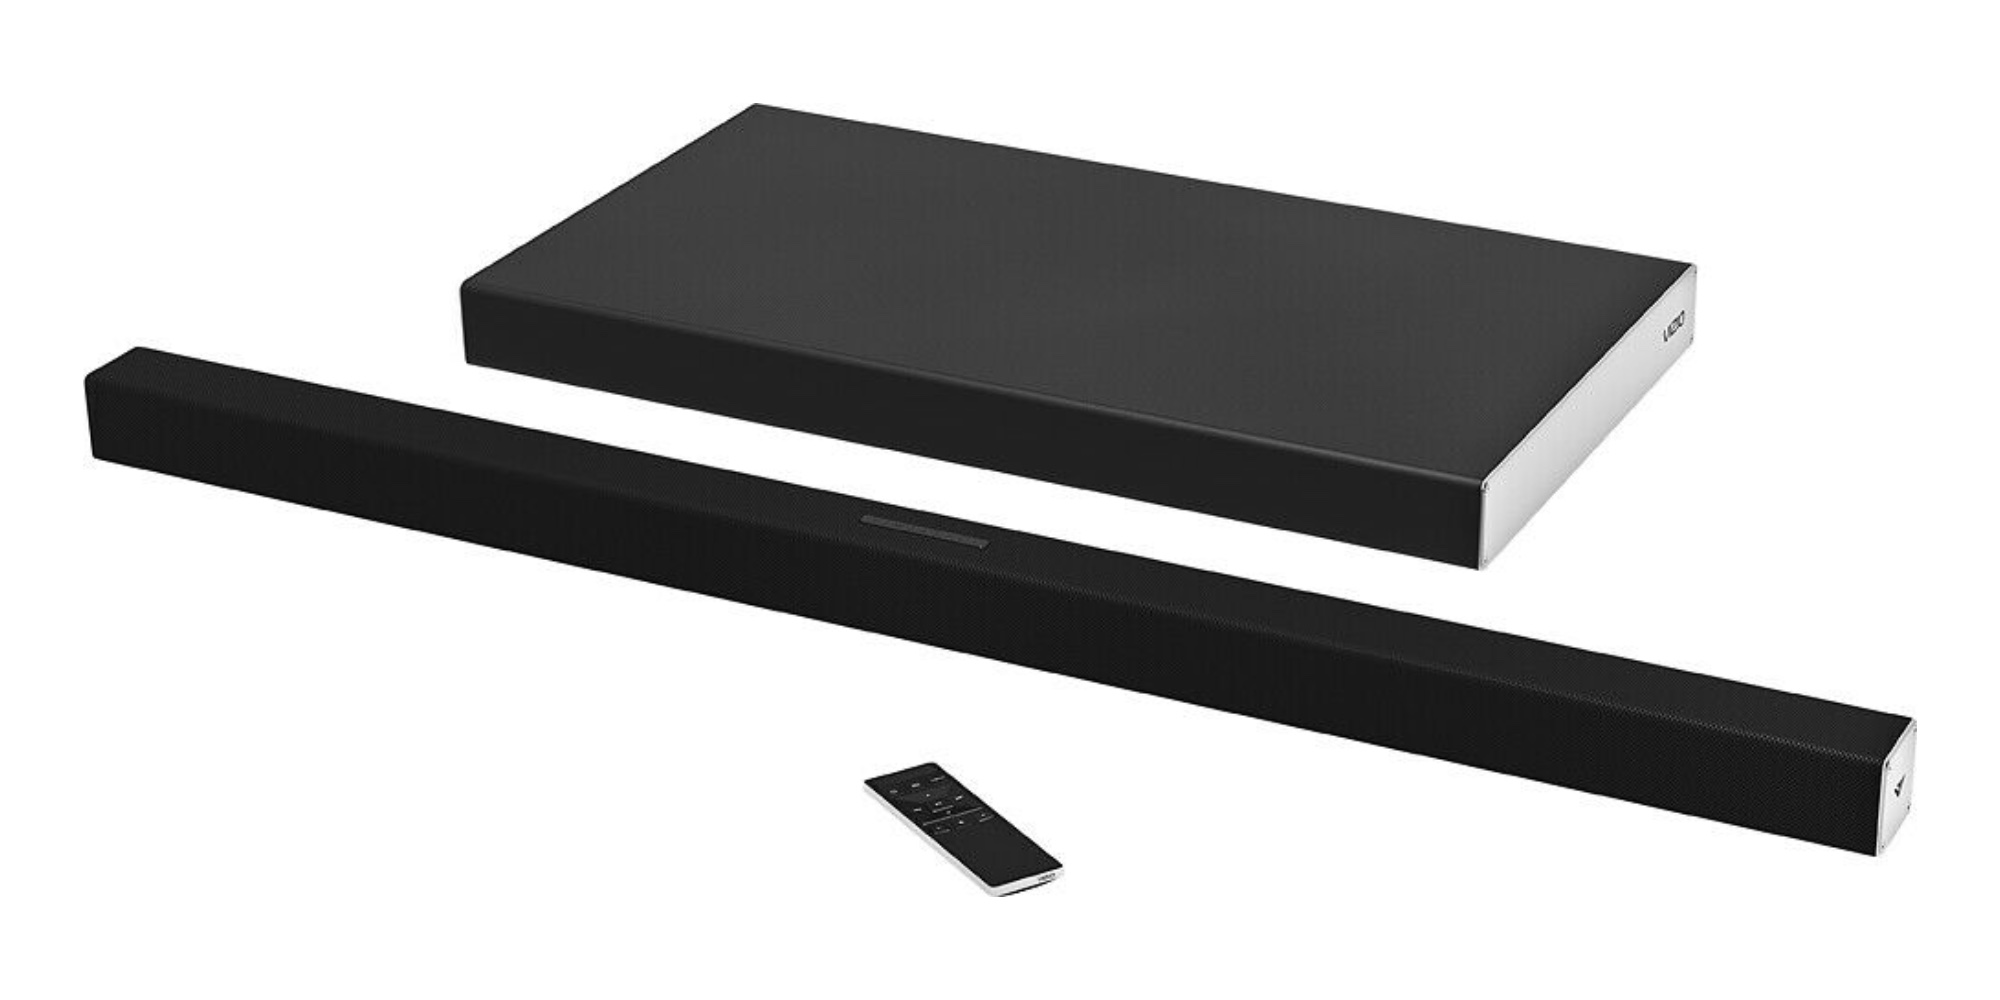 VIZIO's SmartCast Soundbar System returns to all-time low at $180 (Reg. $300) - 9to5Toys